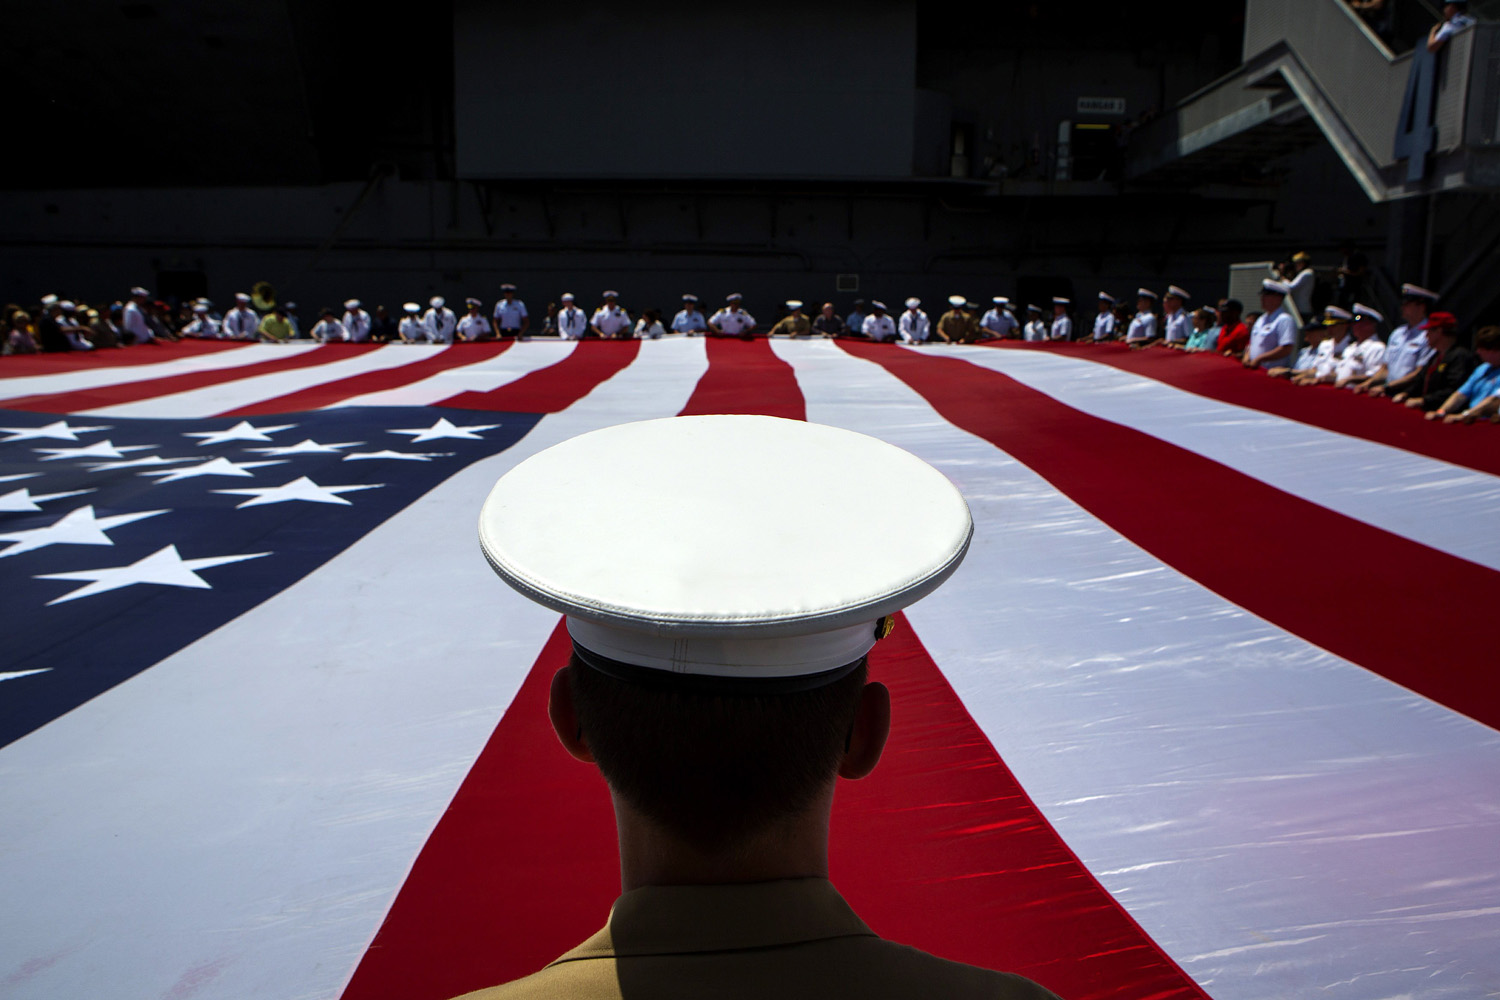 May 26, 2014. Members of the military unfurl an American flag during a wreath laying ceremony at the Intrepid Sea, Air and Space Museum in New York City.